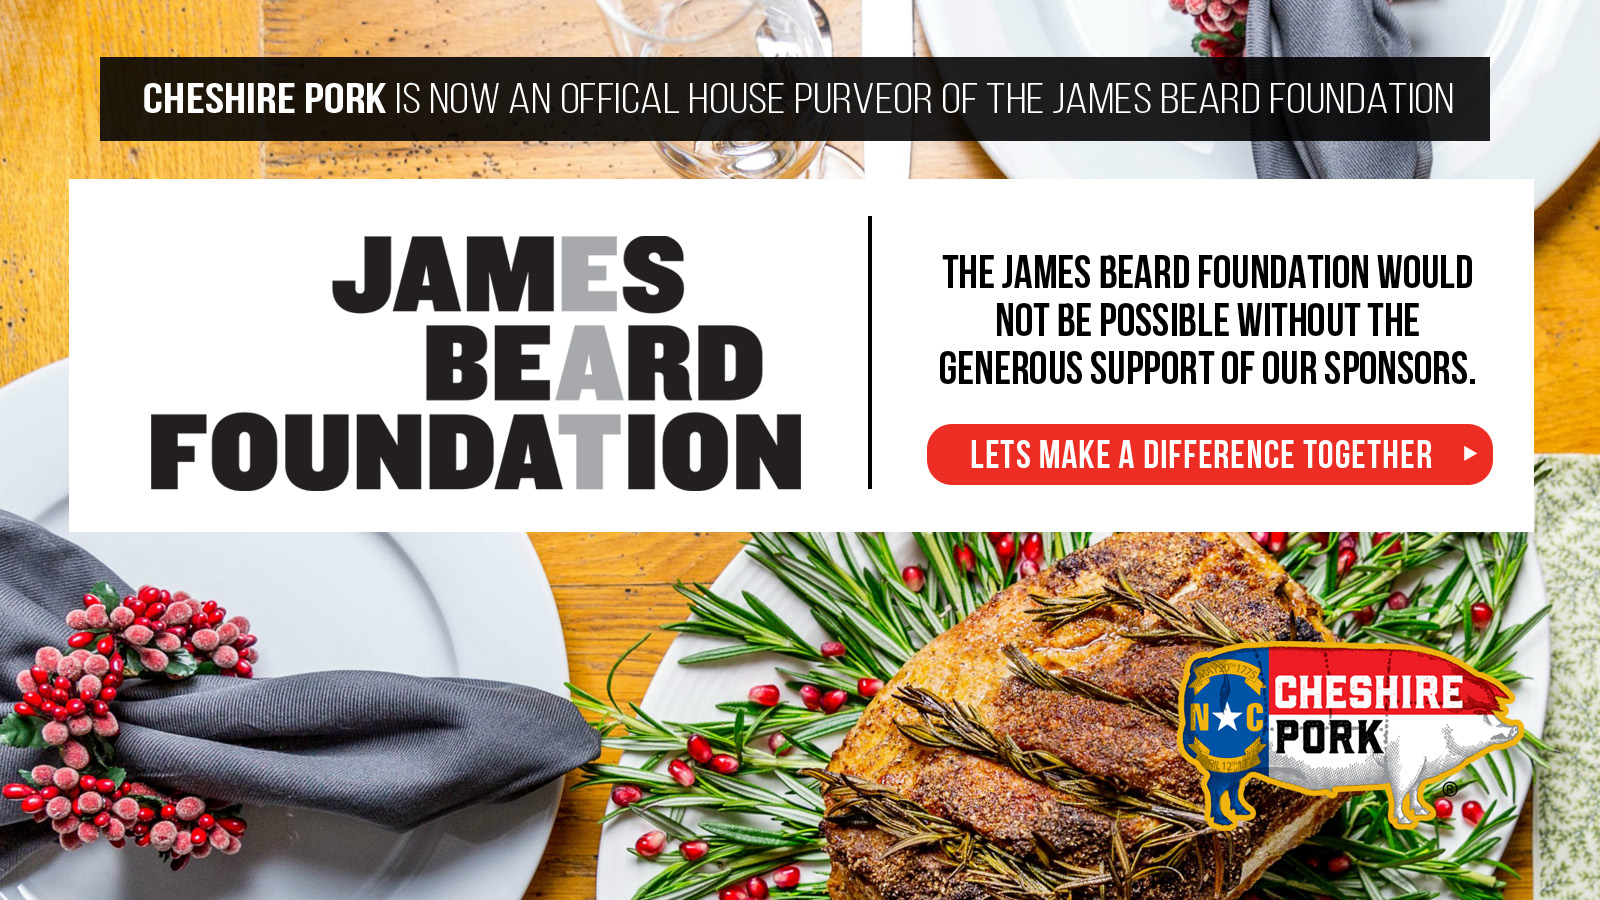 Cheshire Pork - proud sponsor of the James Beard Foundation